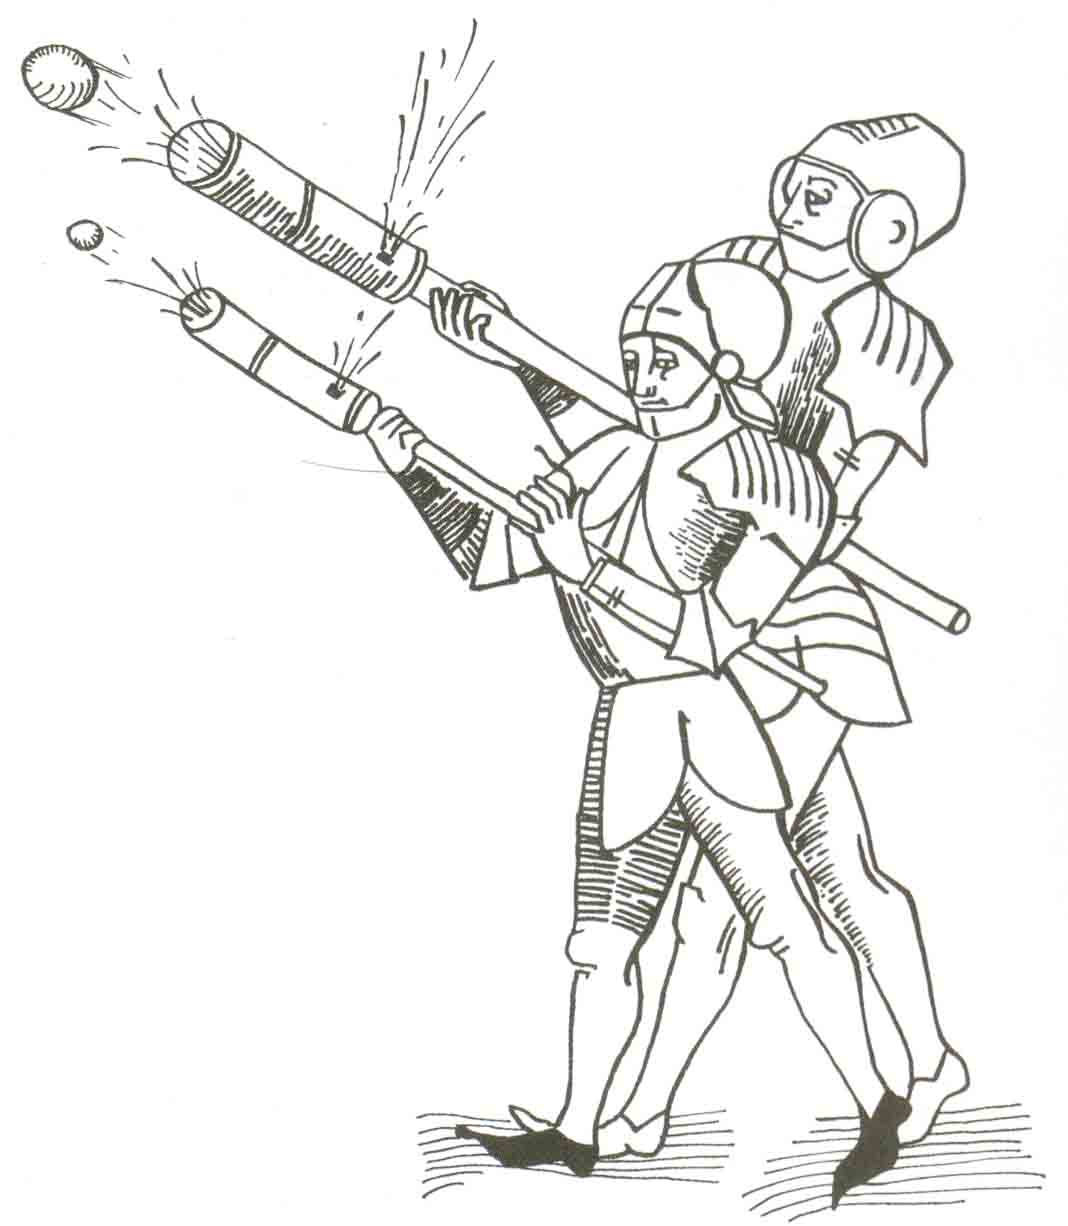 the encyclopedia of weapons early rifles Matchlock Musket Kits this early 15th century illustration depicts the firing of hand cannons in battle the stock is held firmly under the firer s arm and the man in the